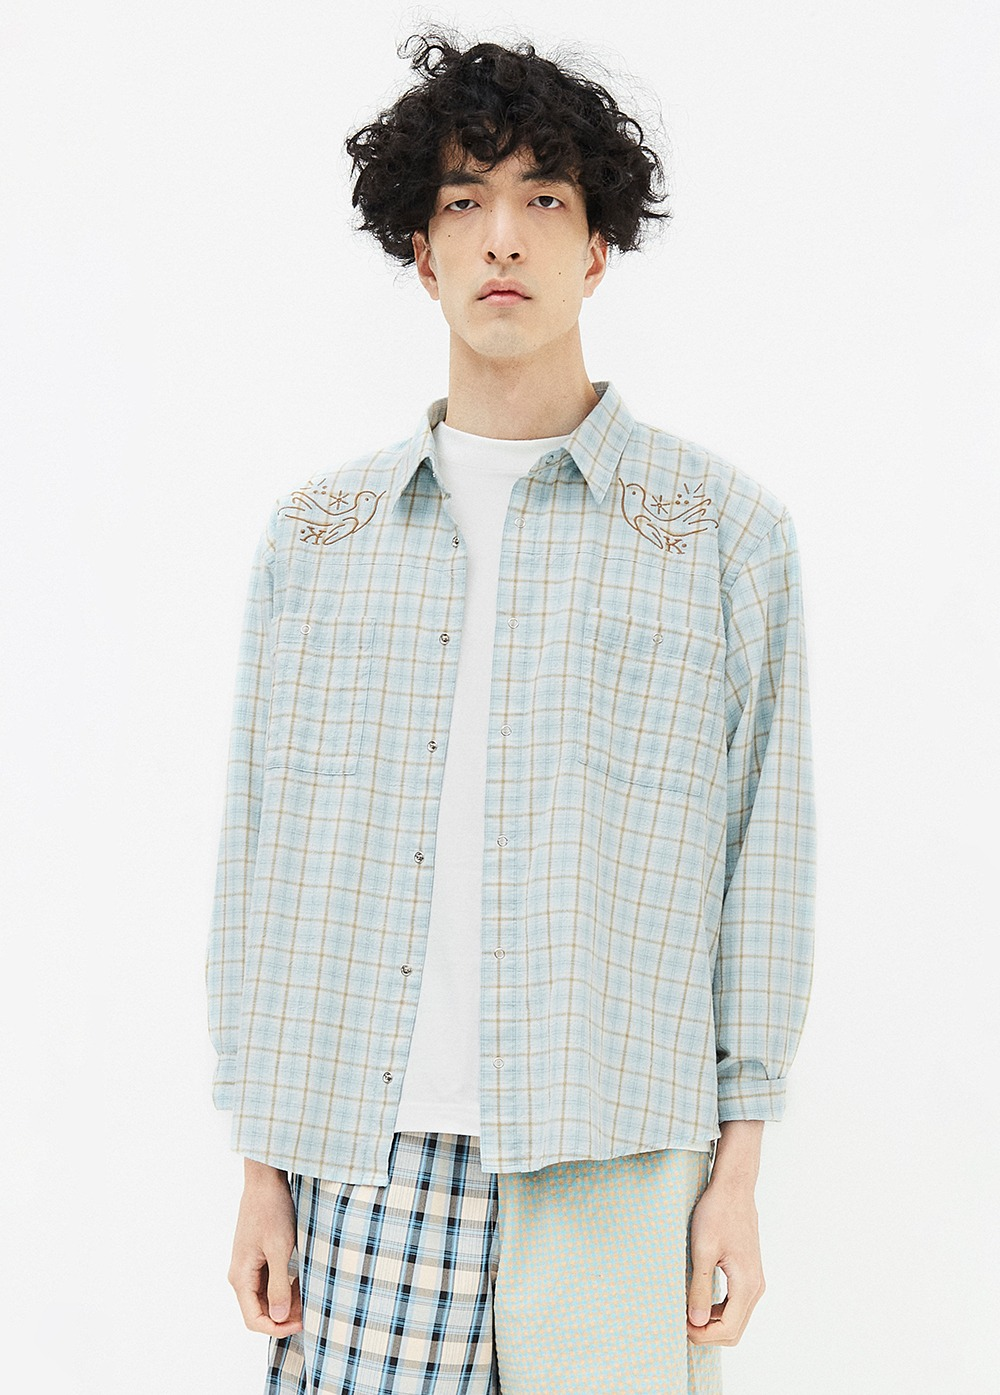 KANCO 2 POCKET CHECK SHIRT blue